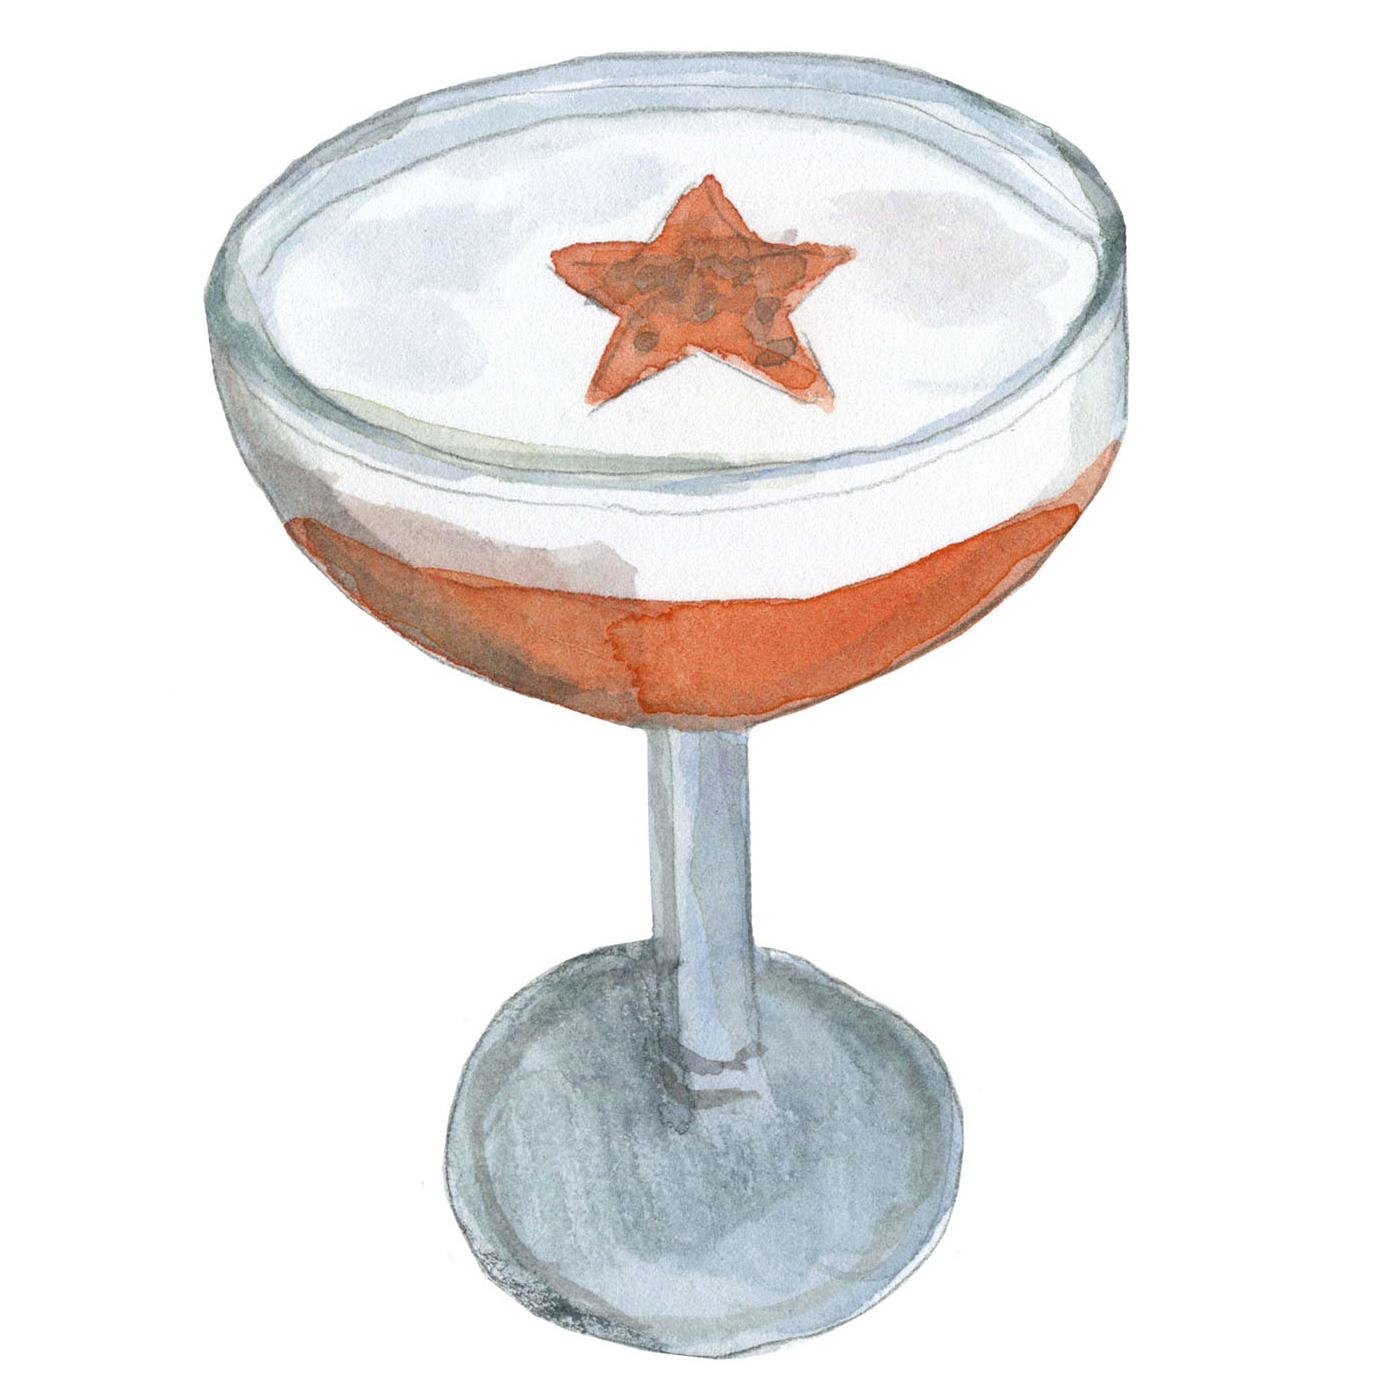 cocktail served in coupe illustration